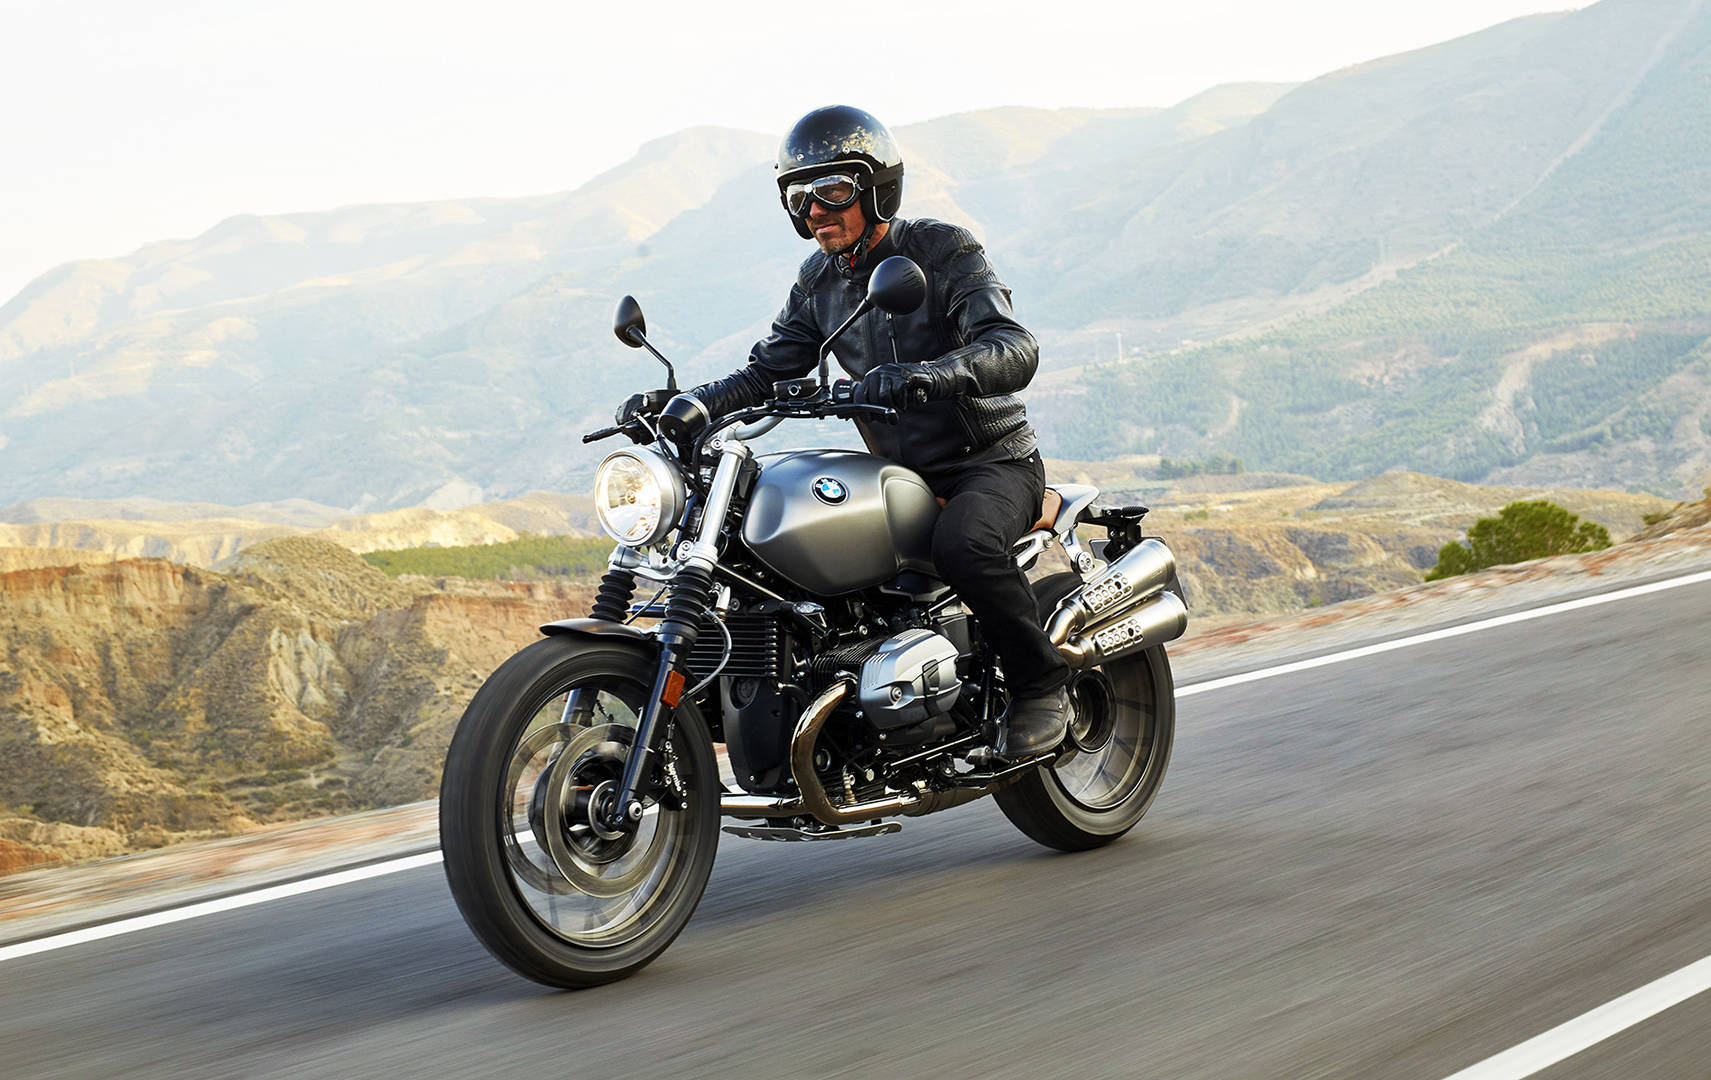 new bmw r ninet scrambler video provides another view of enticing ride. Black Bedroom Furniture Sets. Home Design Ideas